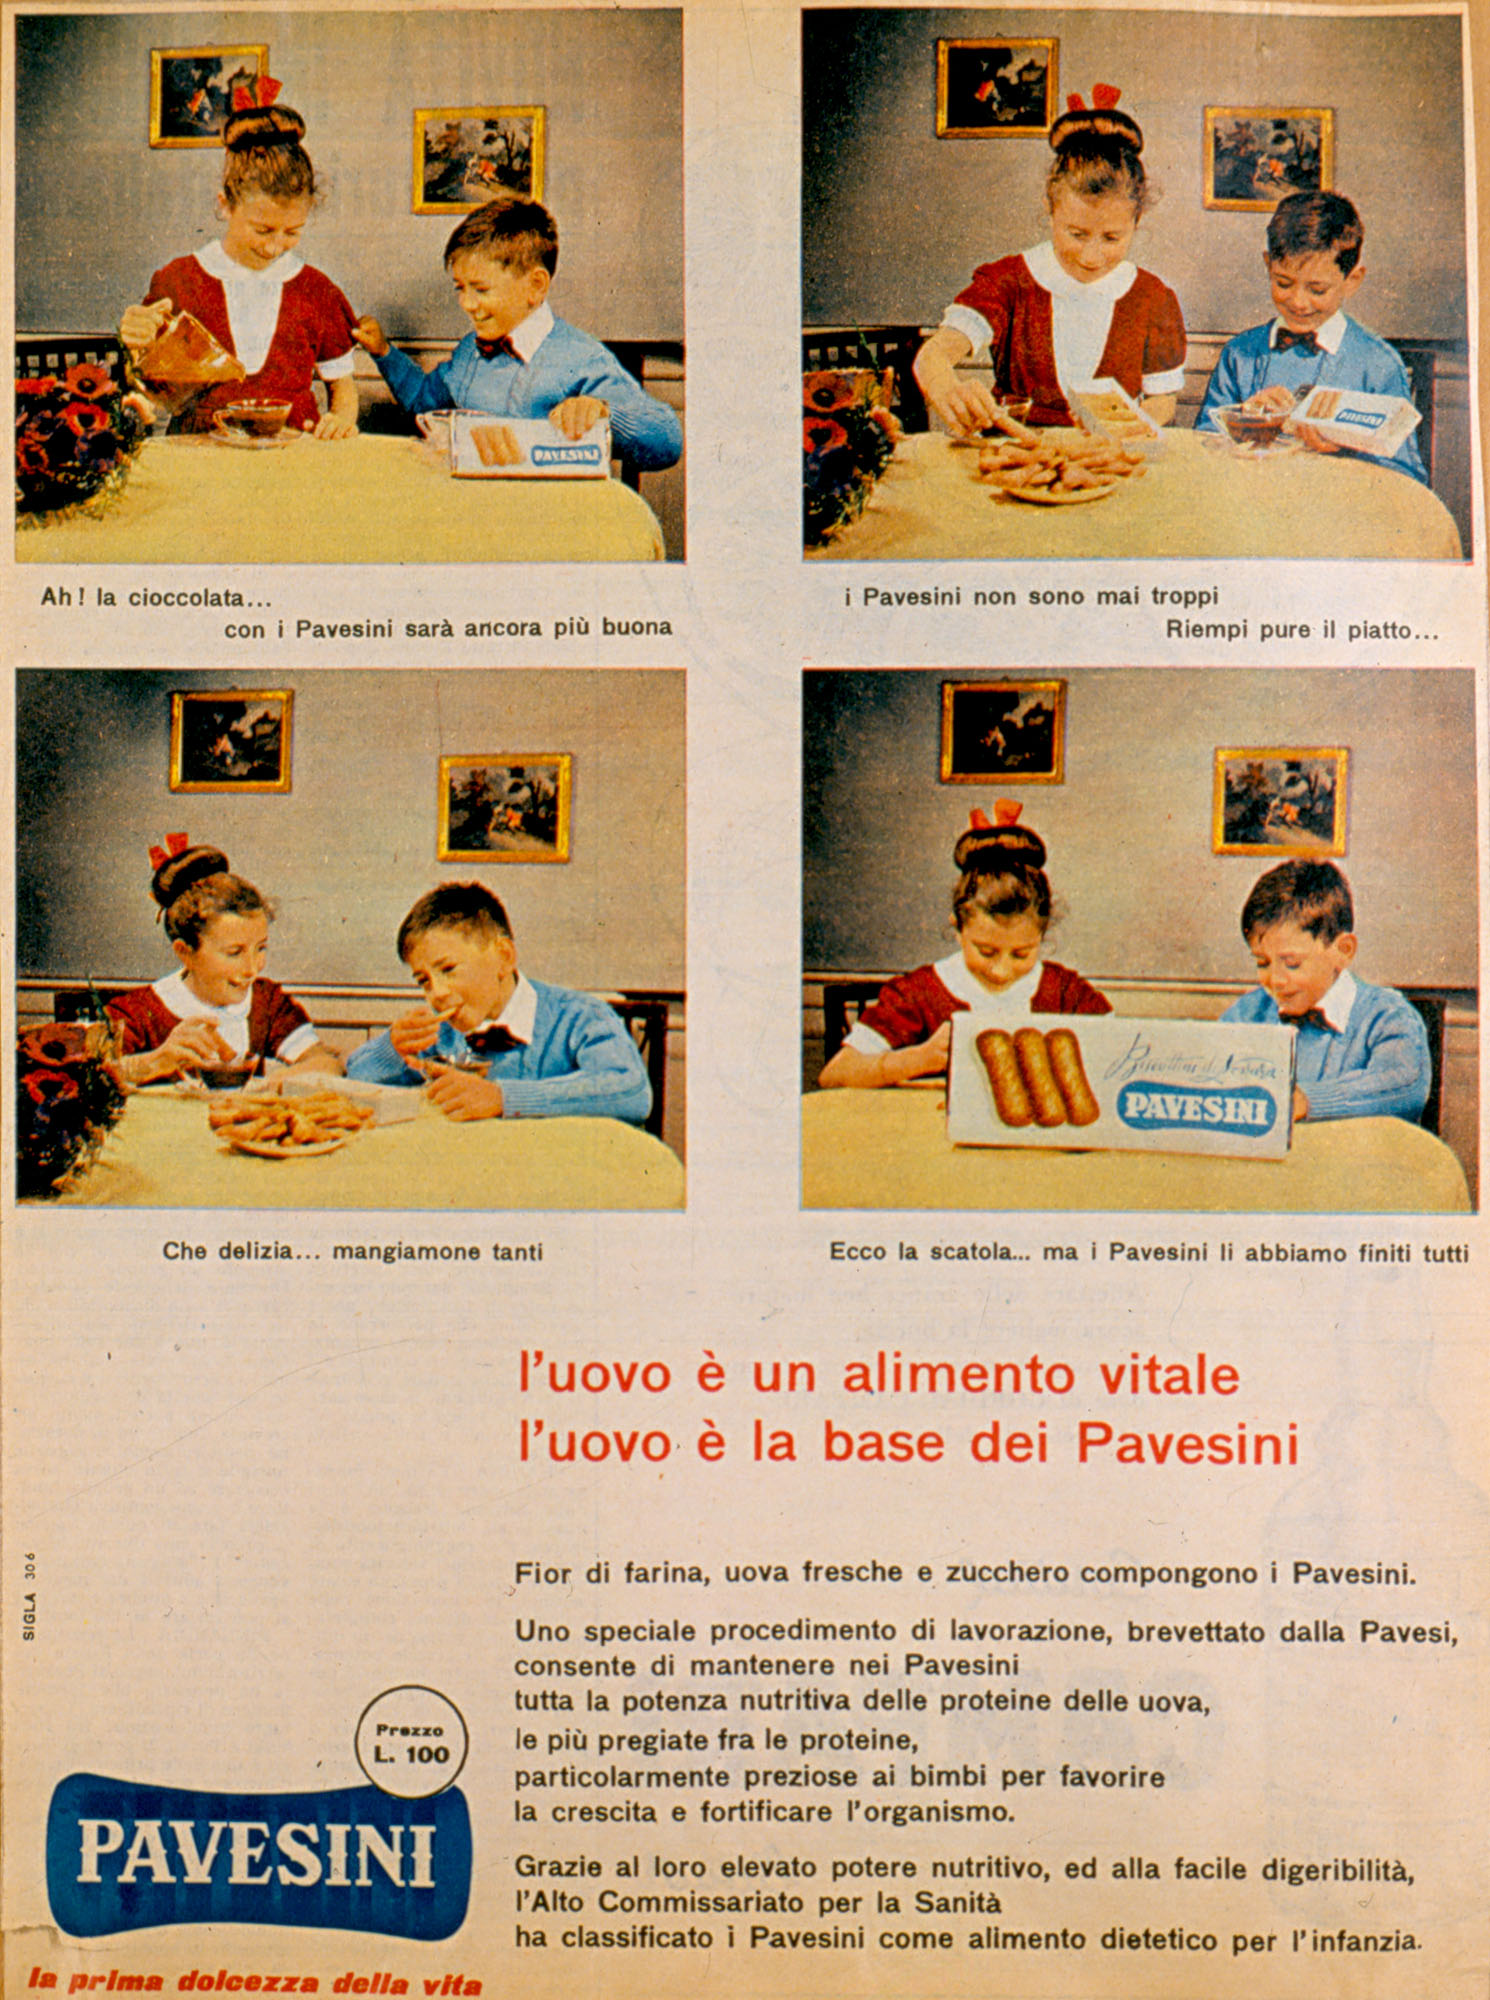 Press advertising - The egg is a vital element. The egg is the base of Pavesini, 1956